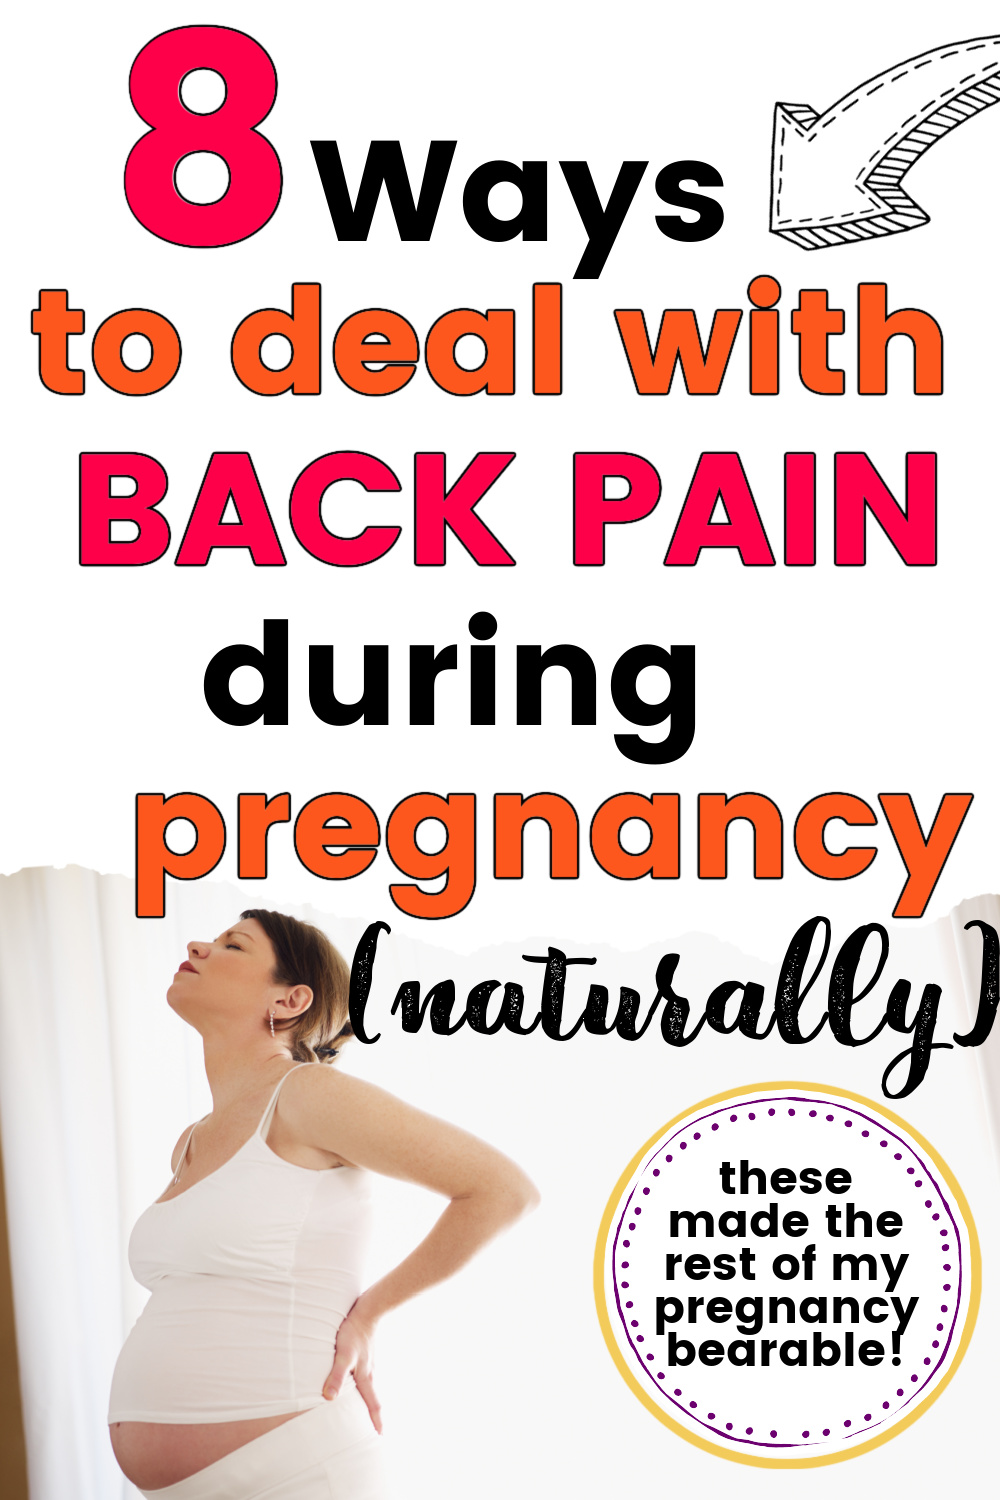 pregnant woman in pain and holding aching back